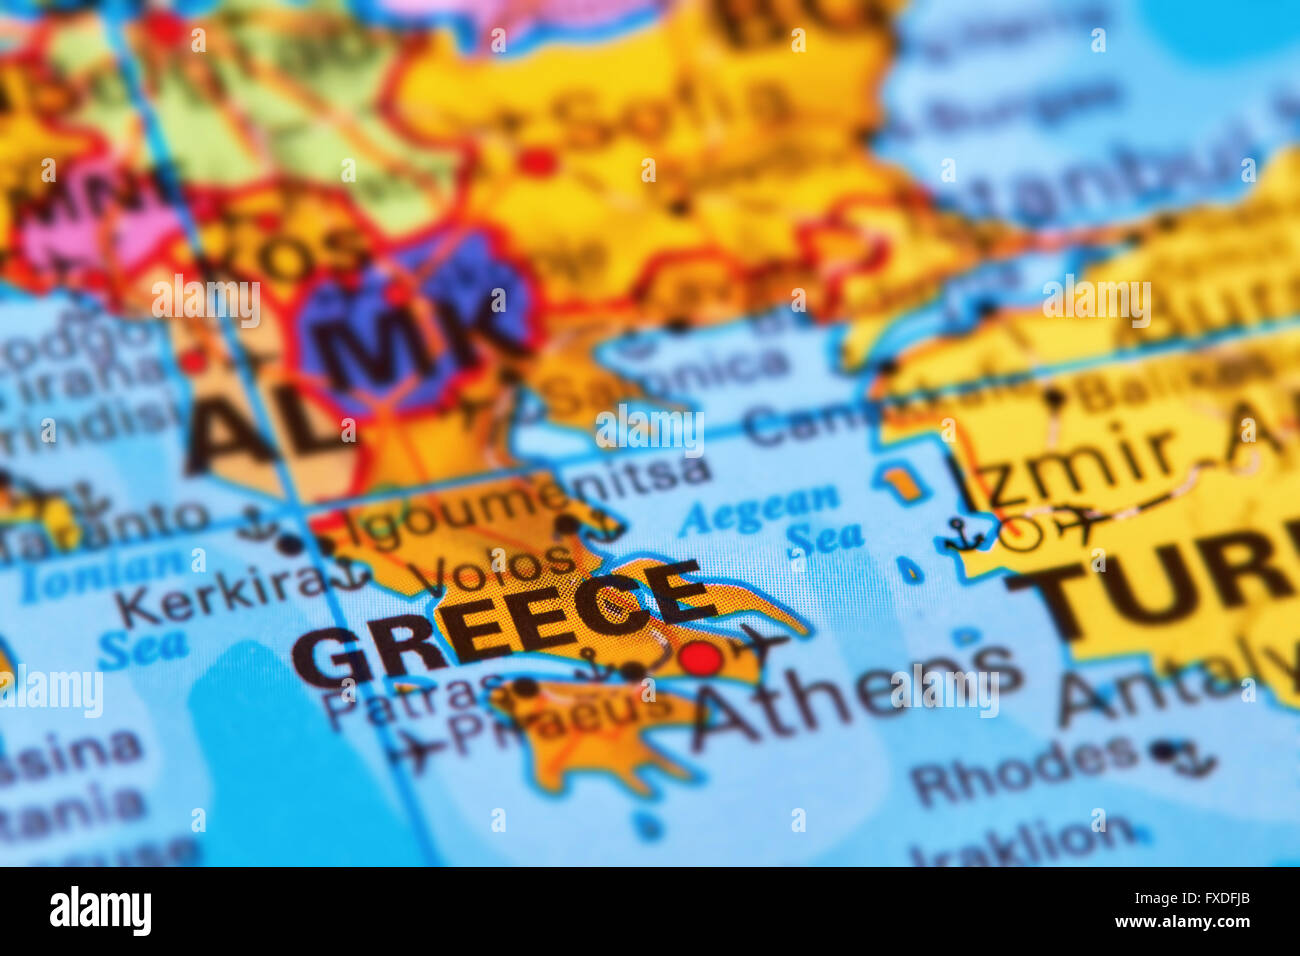 Greece country in europe on the world map stock photo 102330547 greece country in europe on the world map gumiabroncs Image collections